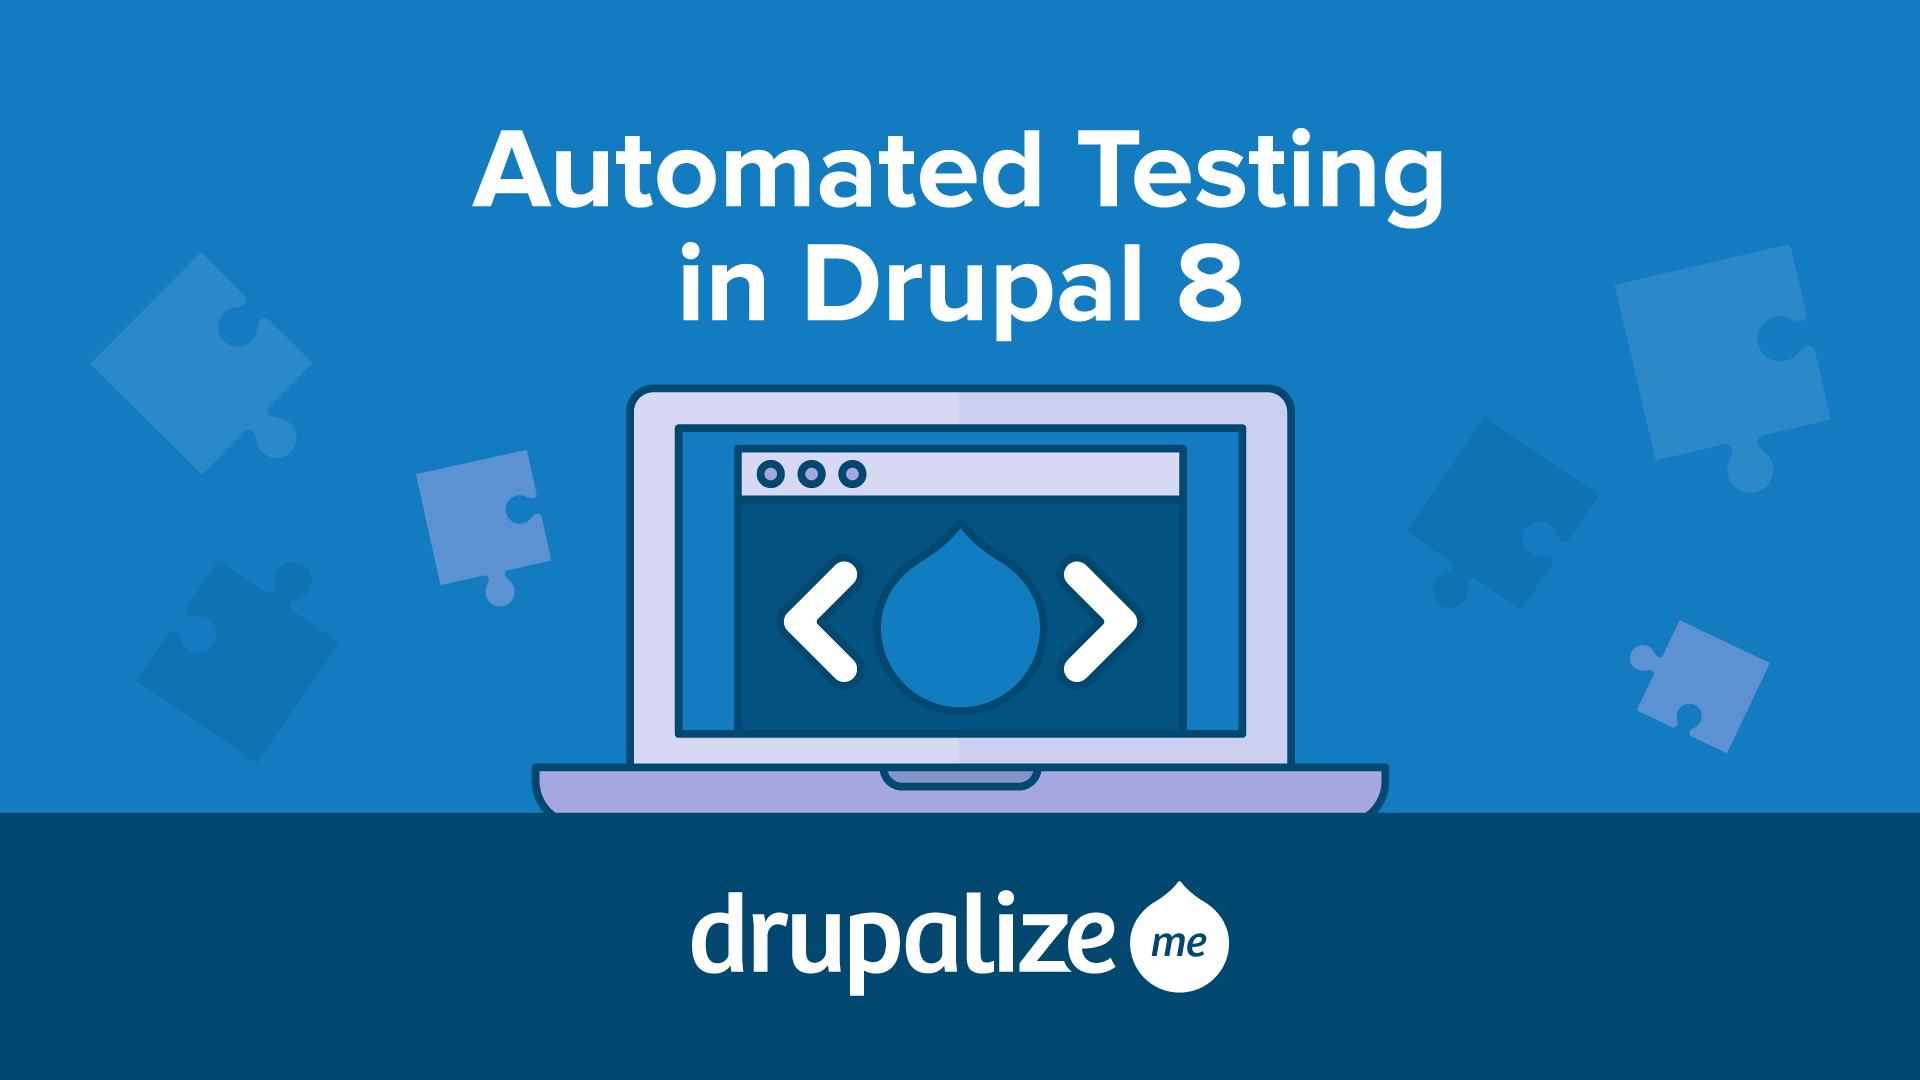 Automated Testing in Drupal 8